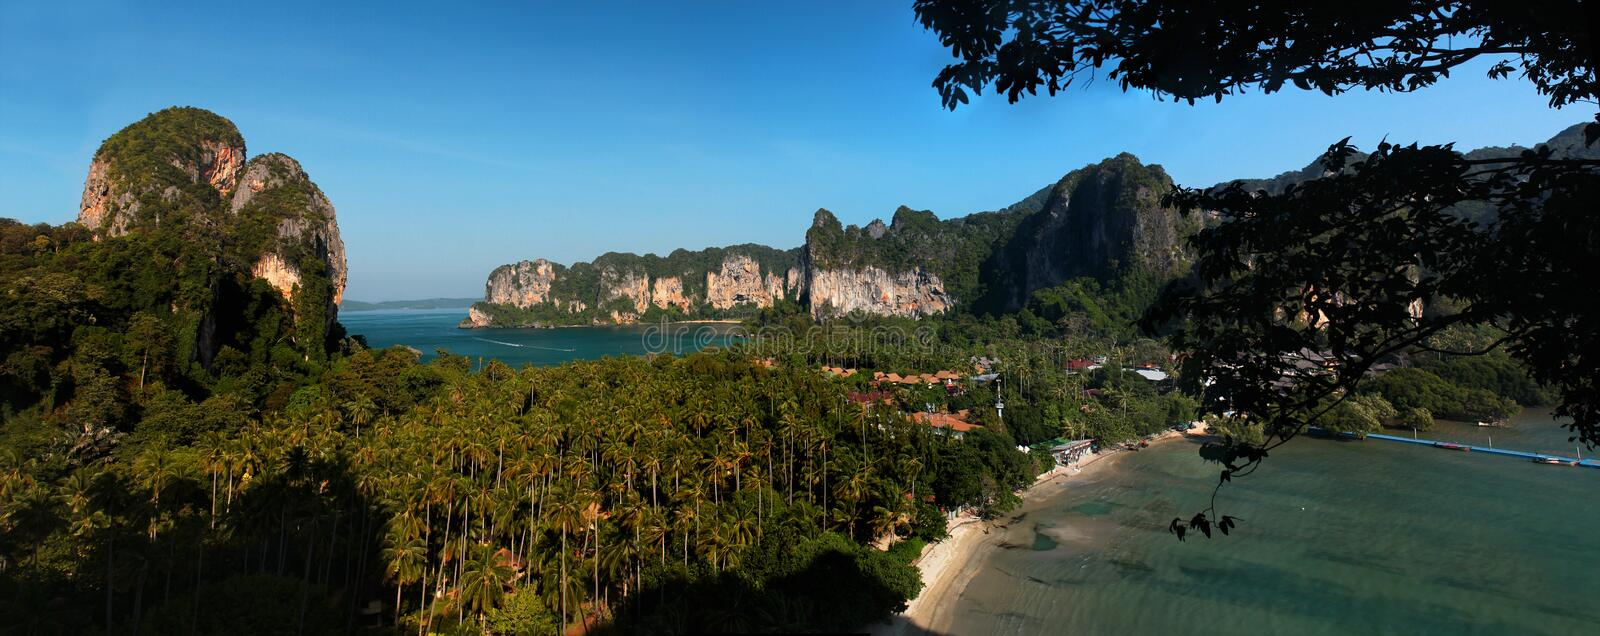 View of Tonsai Bay with the famous Railey West and East Beaches and Tonsai Beach in Krabi, Thailand.  stock image